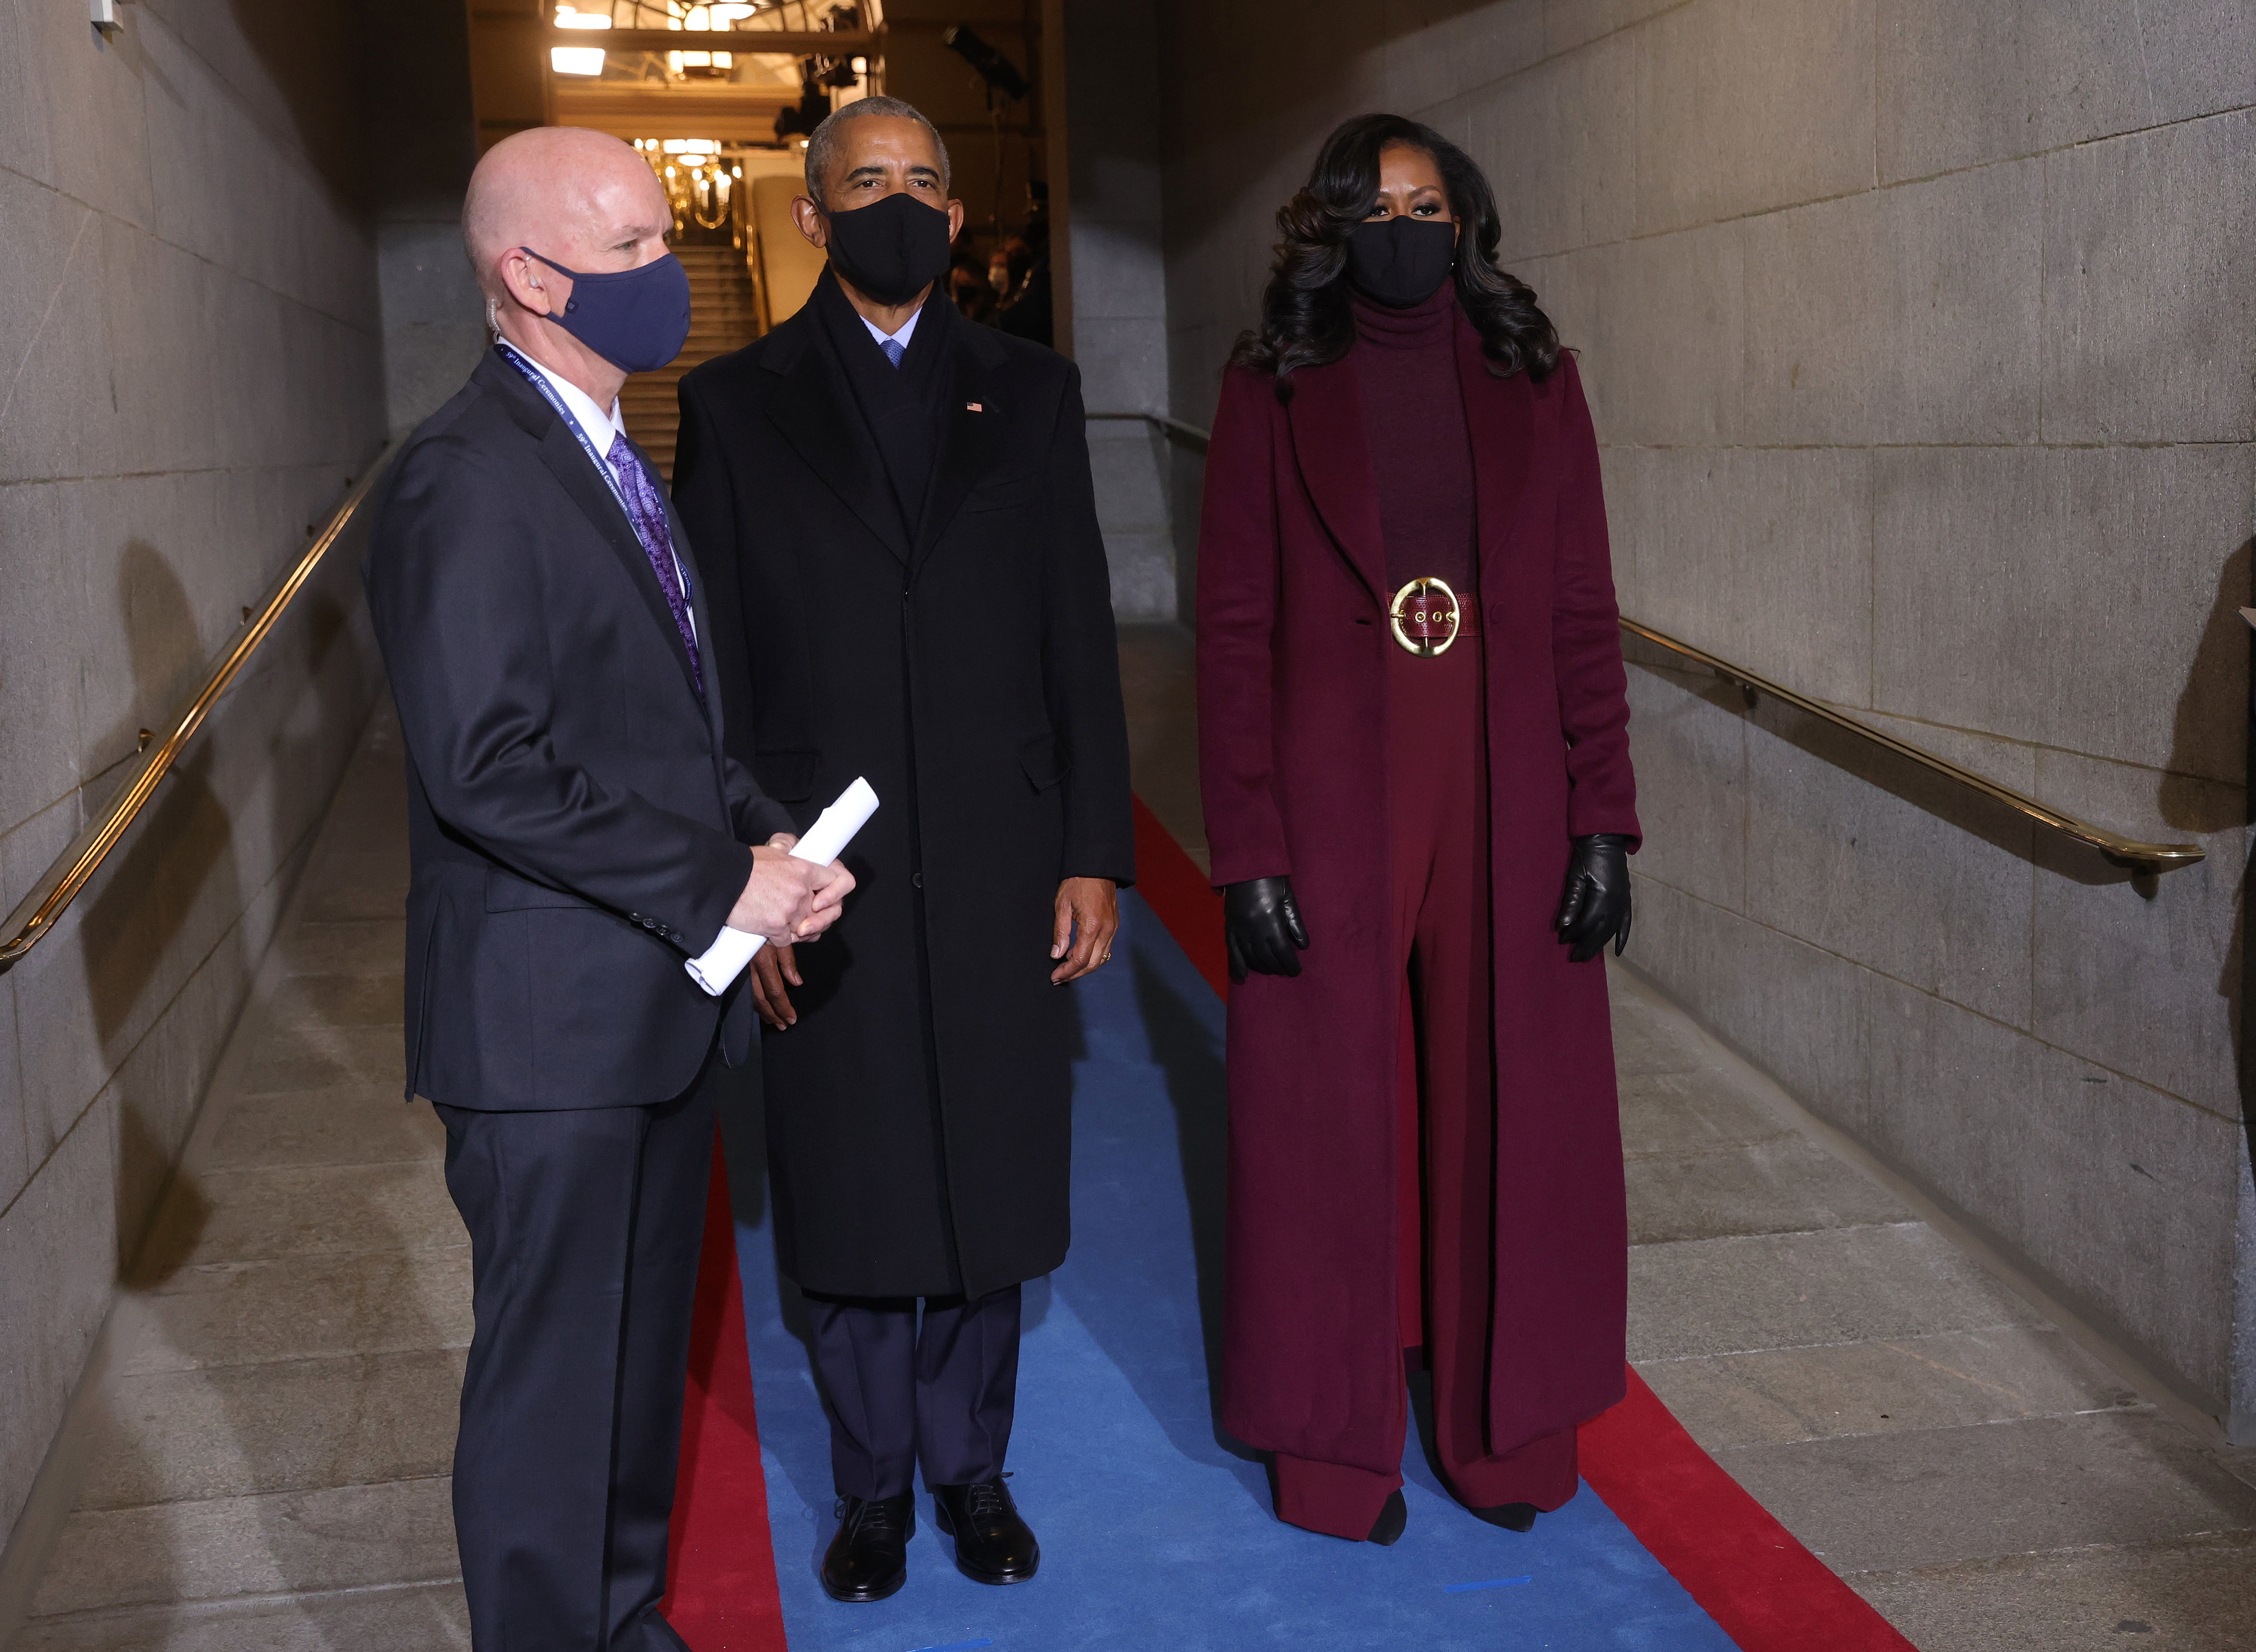 Barack and Michelle Obama stand in a hallway at President Joe Biden's inauguration